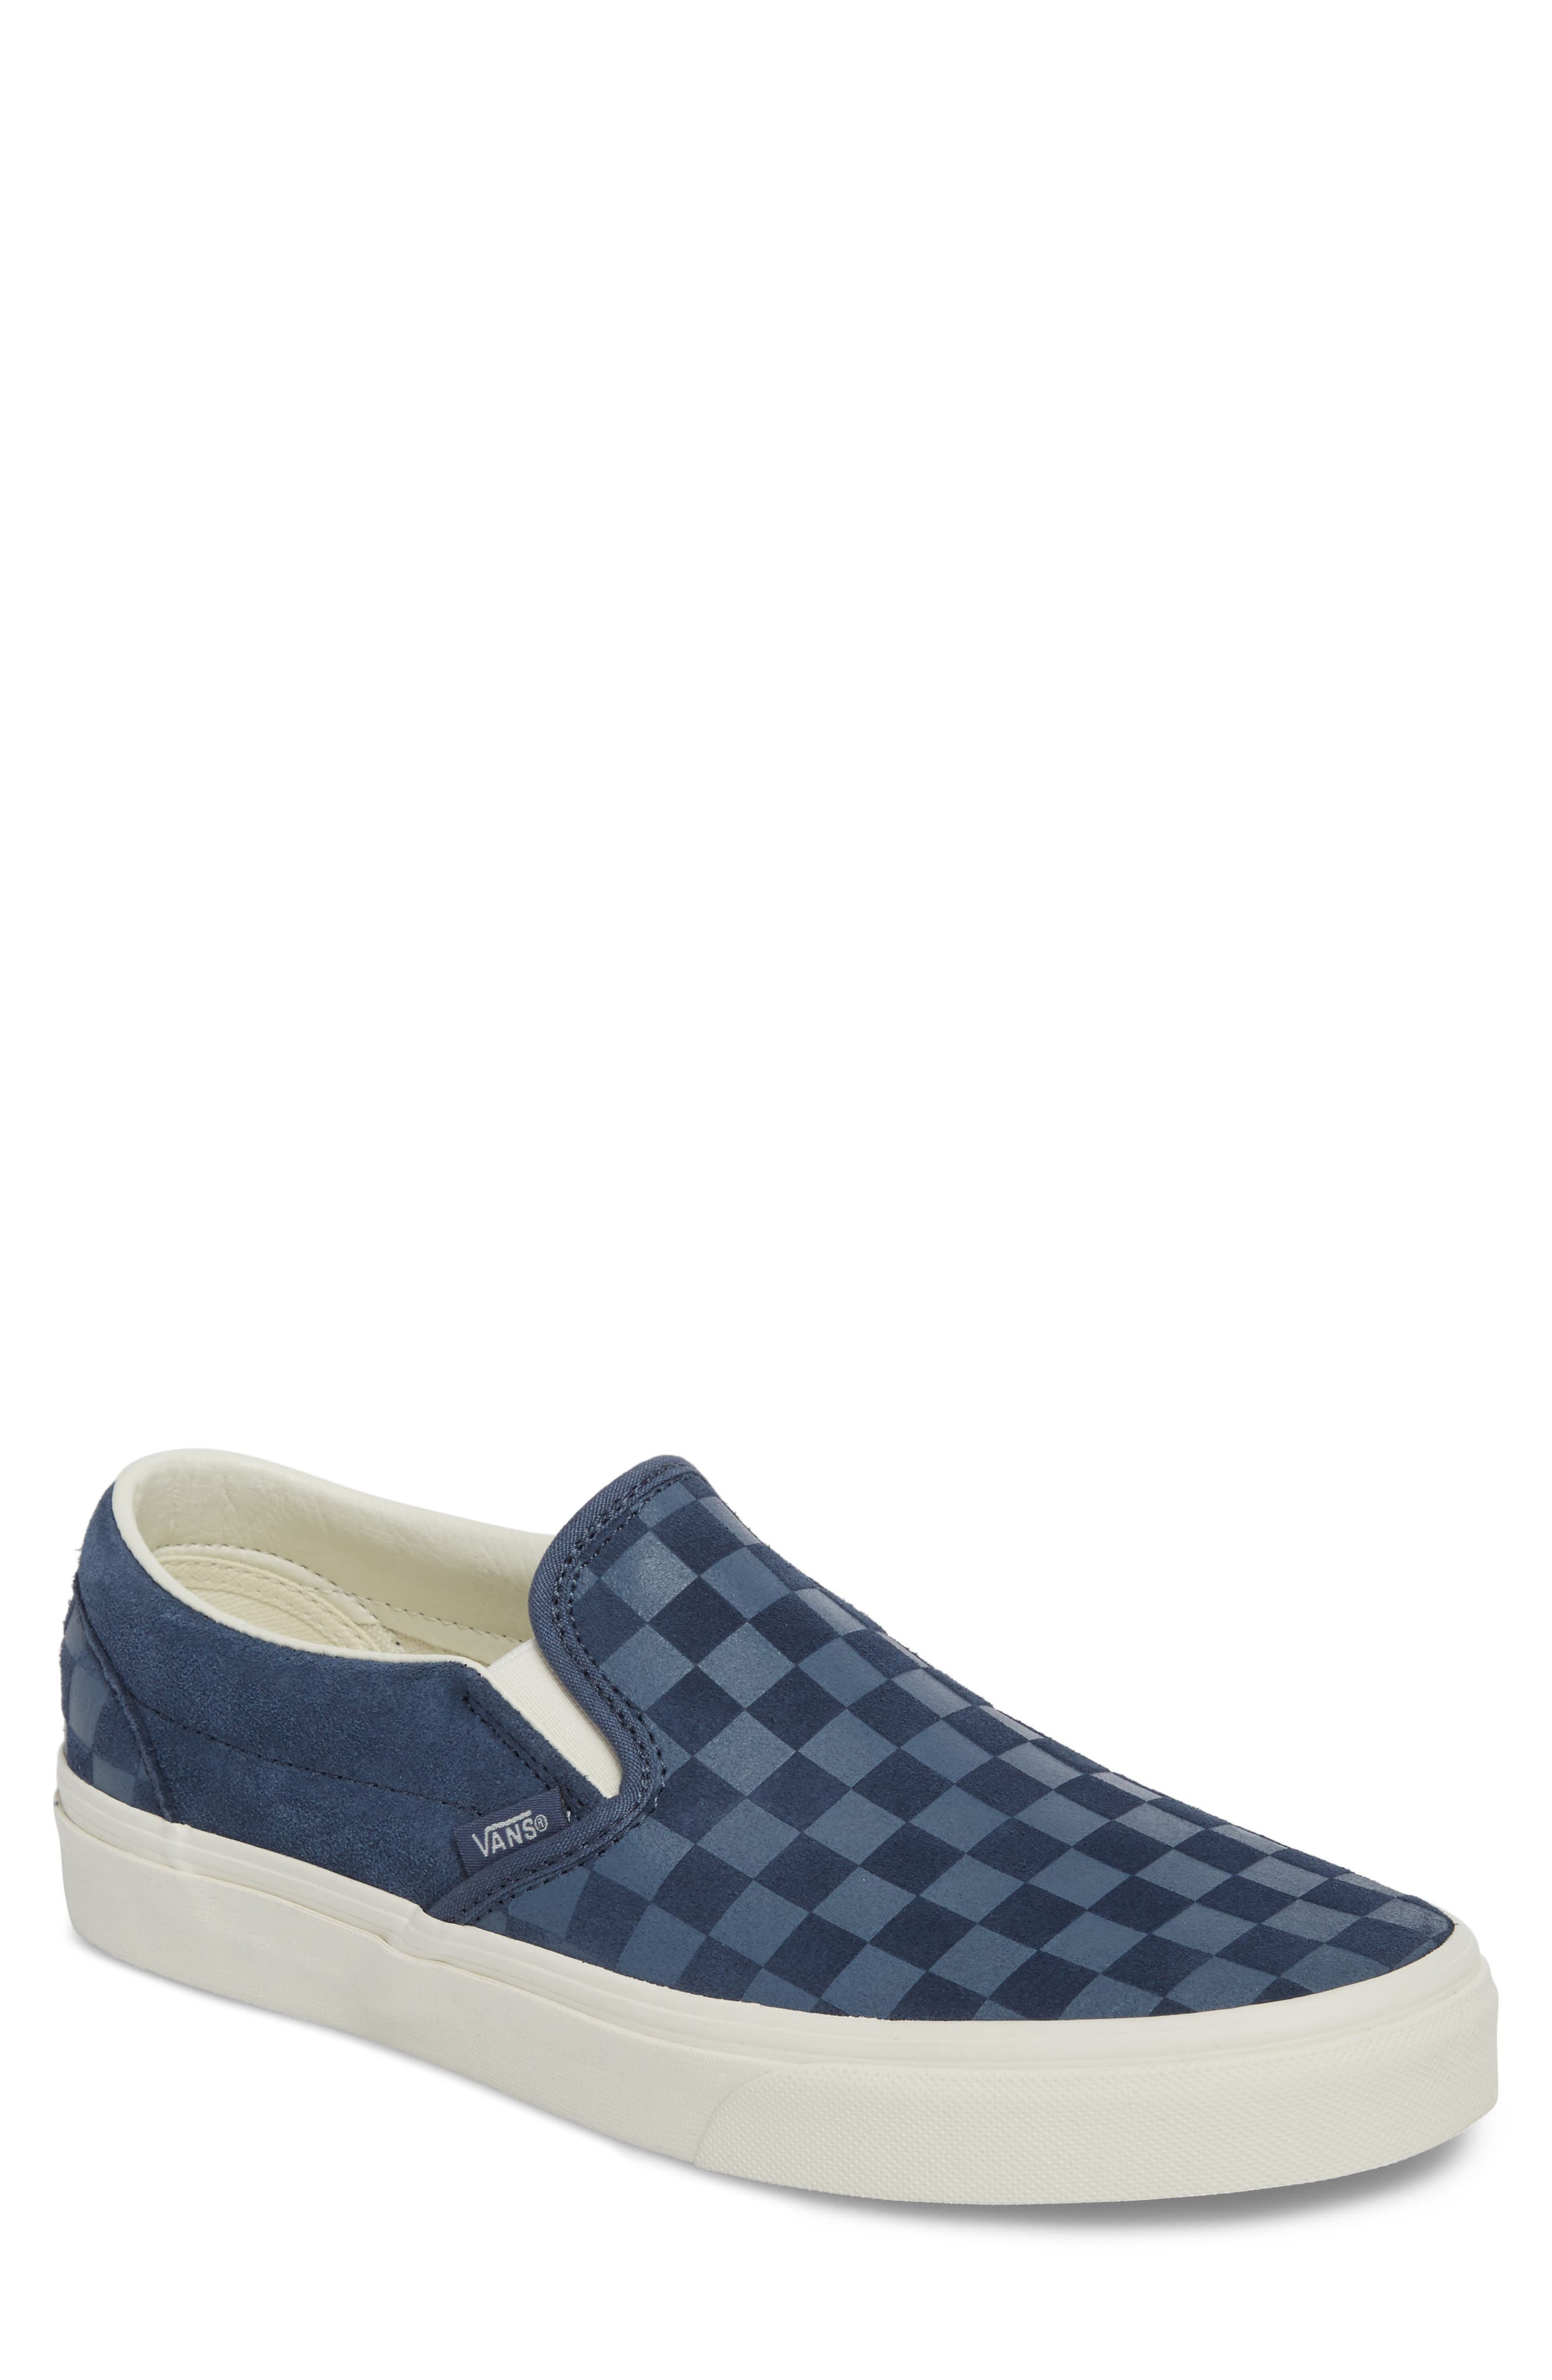 Classic Slip-On Sneaker,                             Main thumbnail 1, color,                             Indigo/ Marshmallow Leather